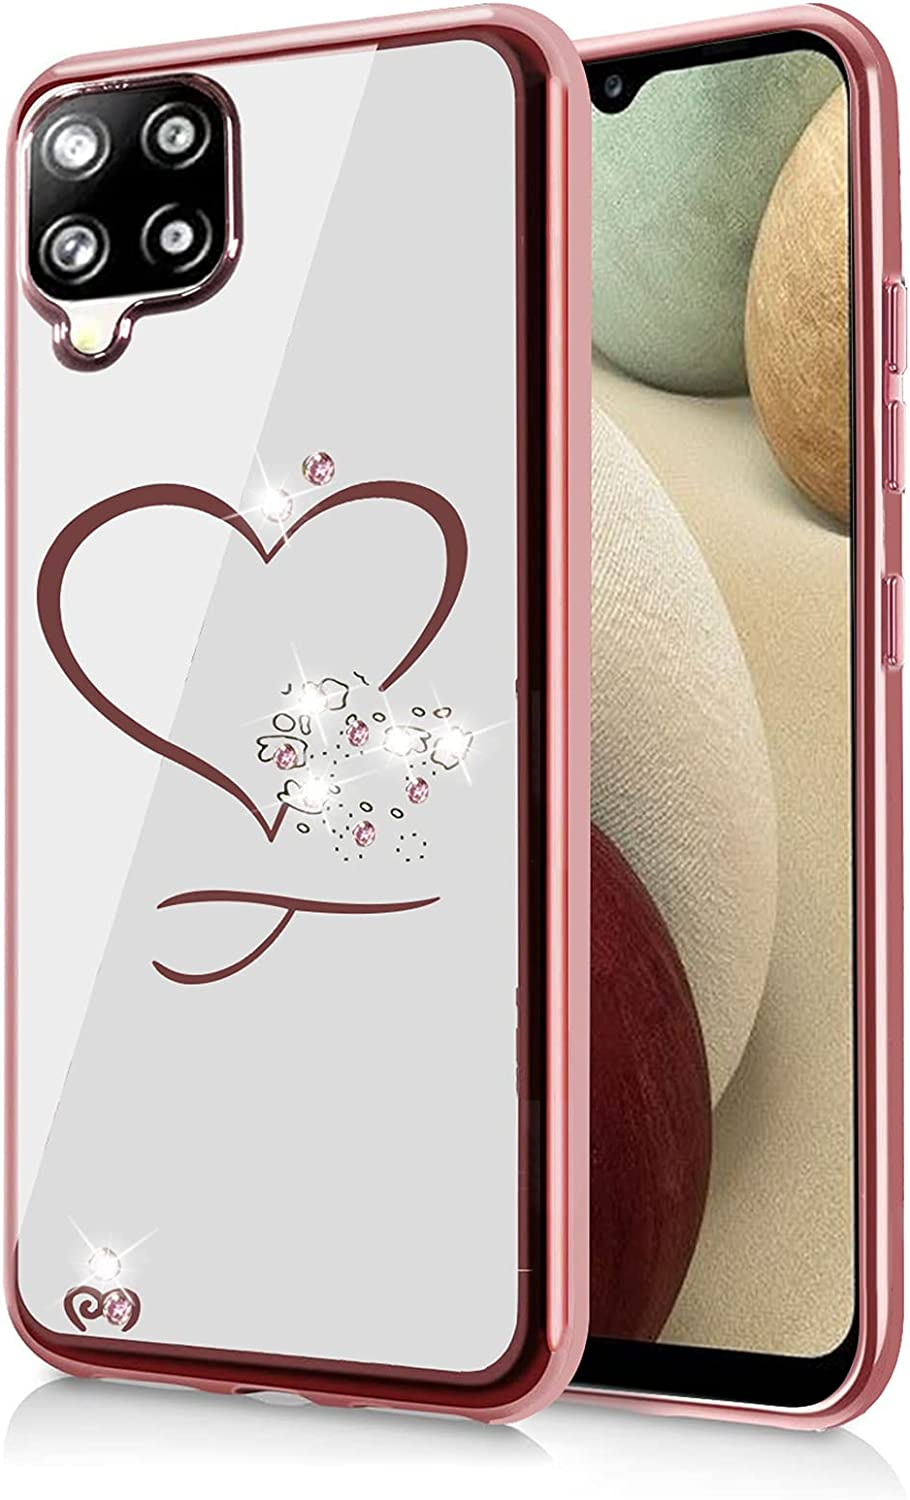 Flying Flier for Samsung Galaxy A12 Case Samsung A12 Case Bling Crystal Rhinestone Slim TPU Glitter Cover Electroplate Bumper Protective Phone Case for Samsung Galaxy A12 5G & 4G